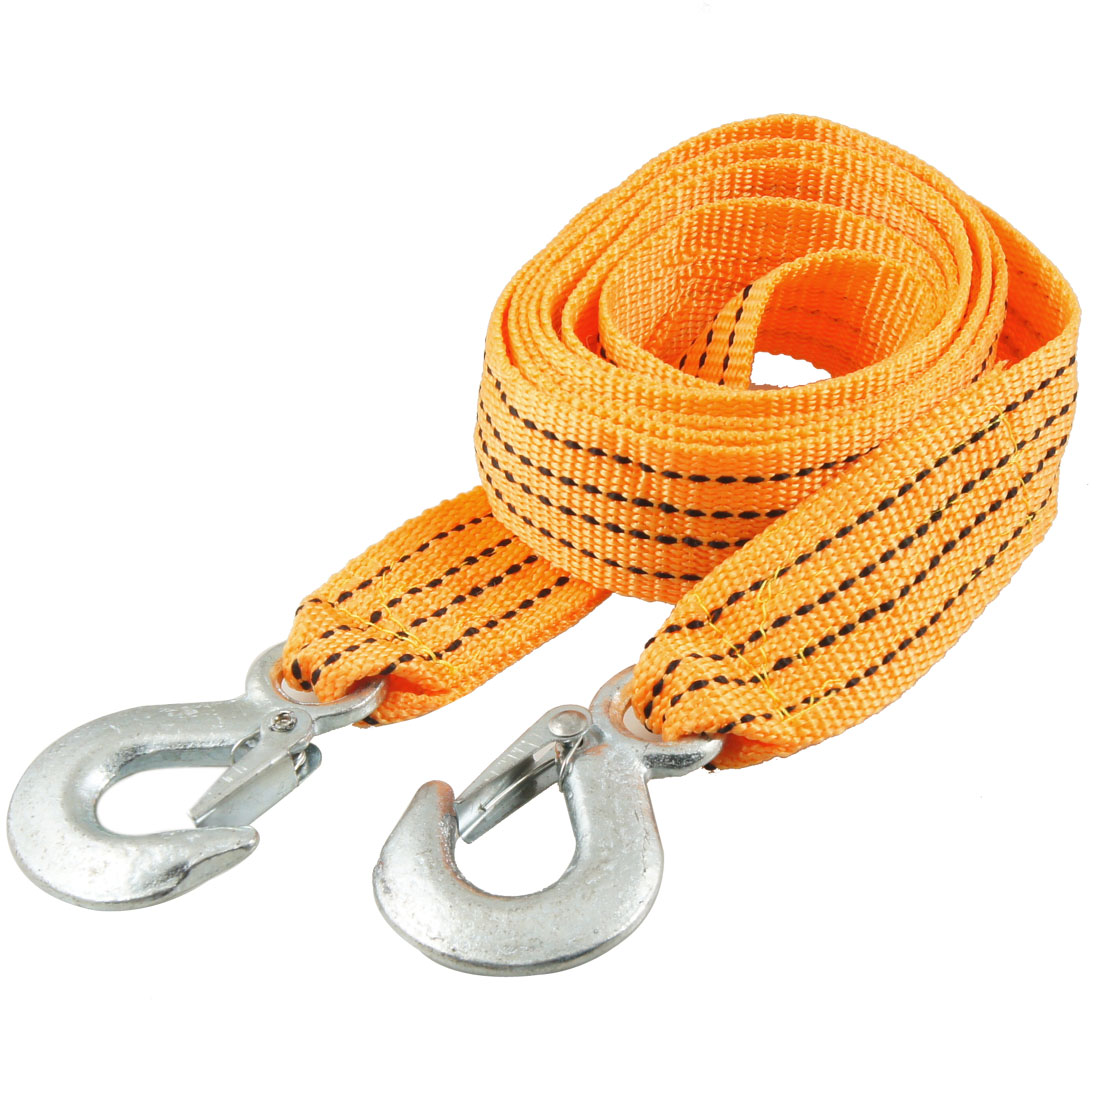 Auto Car 3 Ton Capacity Hook Clasp Orange Black Nylon Tow Rope 2.5M